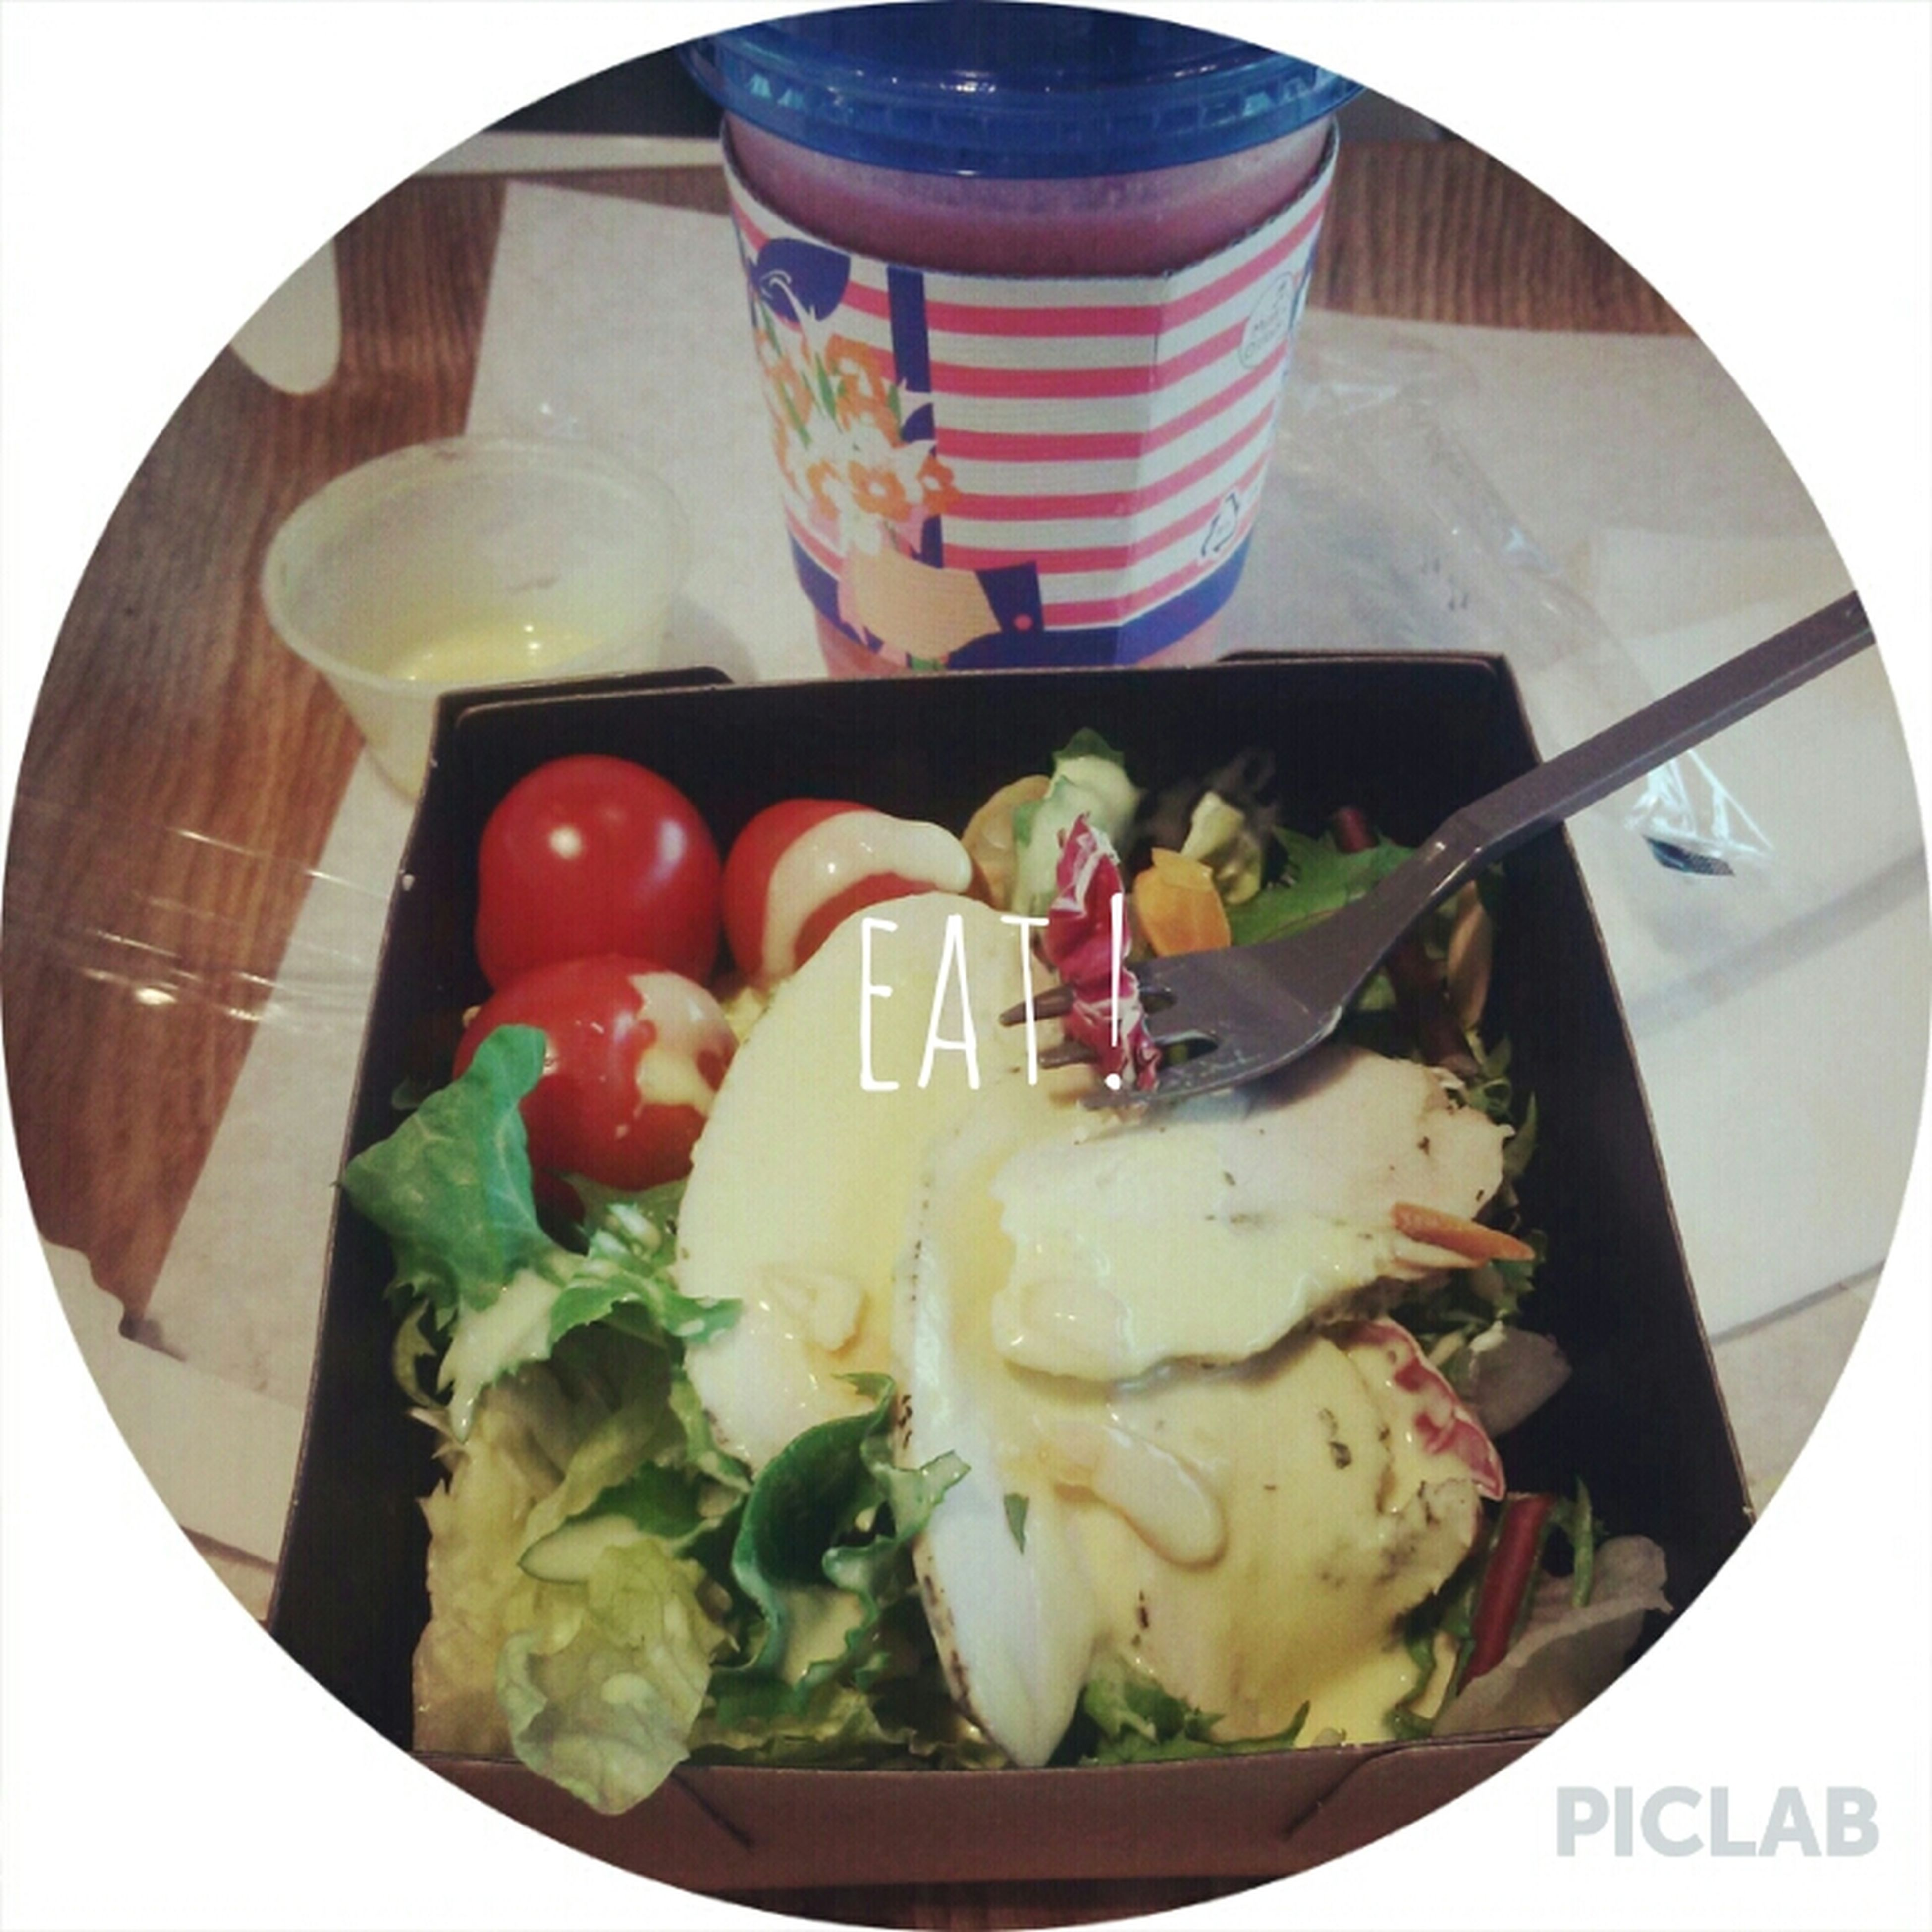 food and drink, food, freshness, indoors, plate, healthy eating, ready-to-eat, still life, serving size, table, vegetable, meal, bowl, indulgence, high angle view, salad, close-up, served, meat, tomato